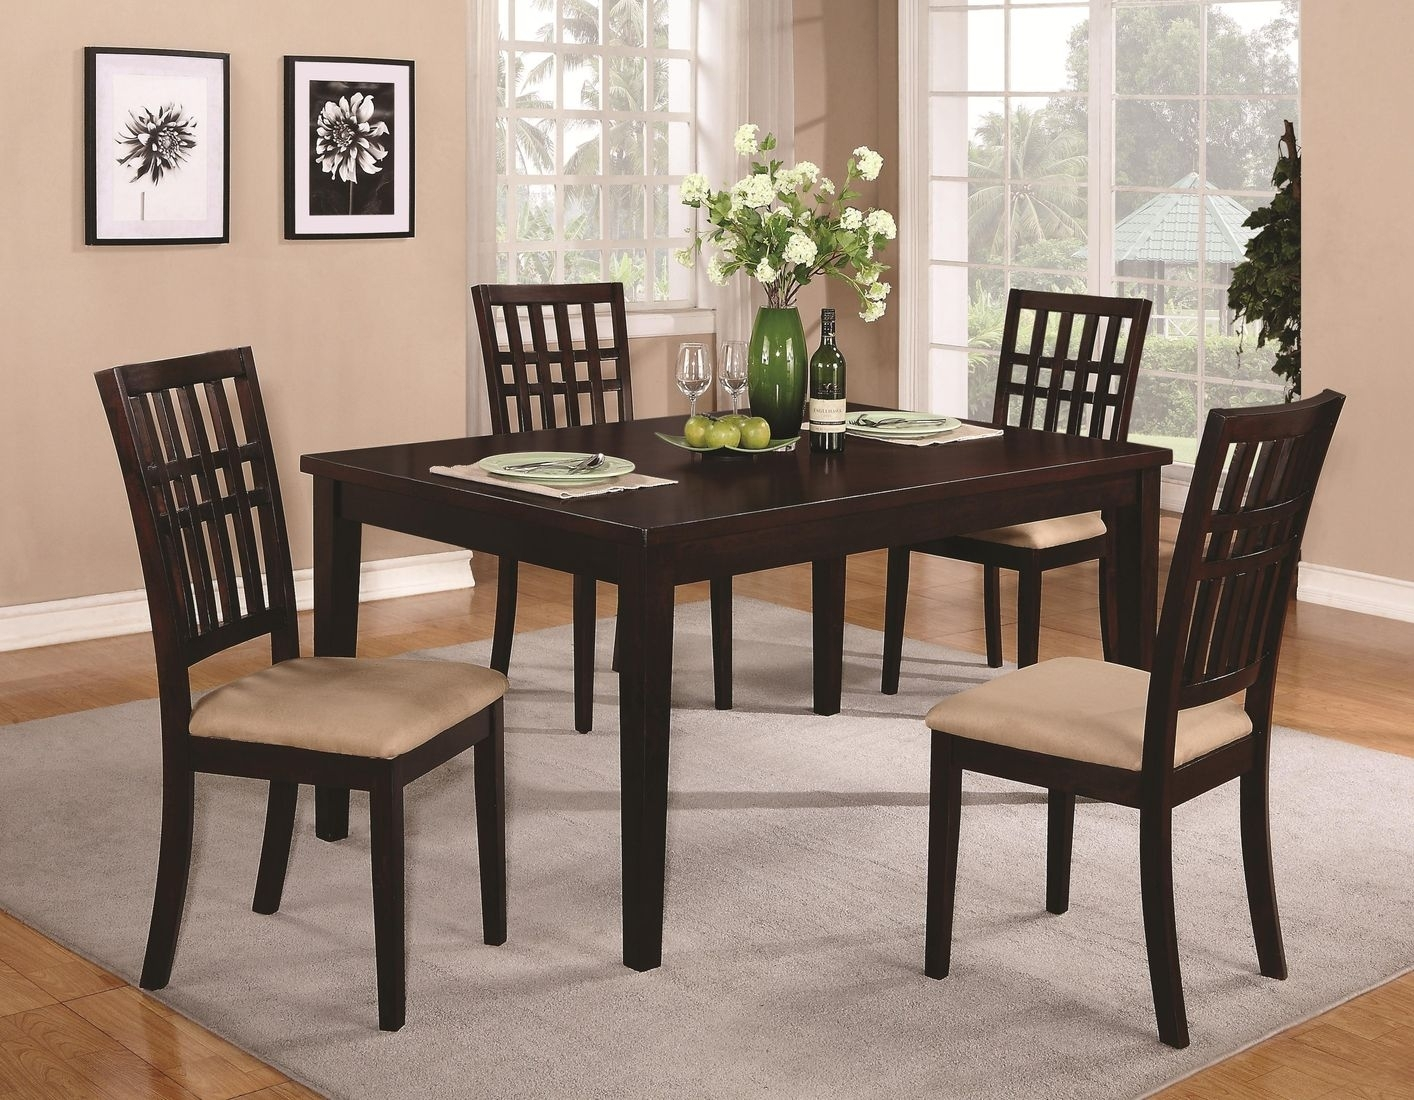 Brandt Dark Cherry Wood Dining Table Steal A Sofa Furniture And Also Inside Sofa Chairs With Dining Table (View 8 of 10)